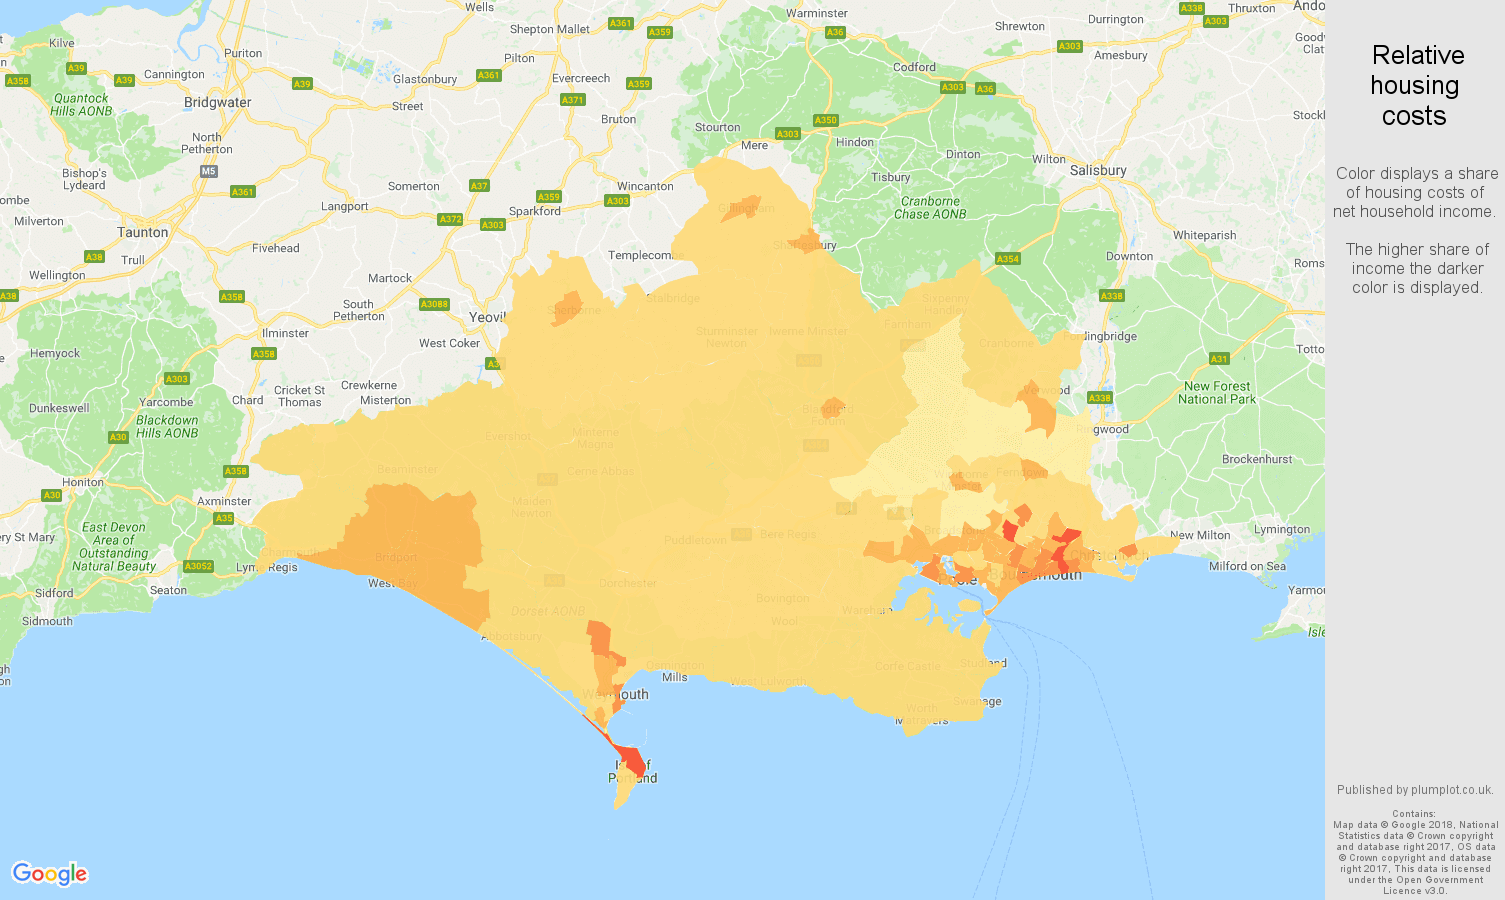 Dorset relative housing costs map